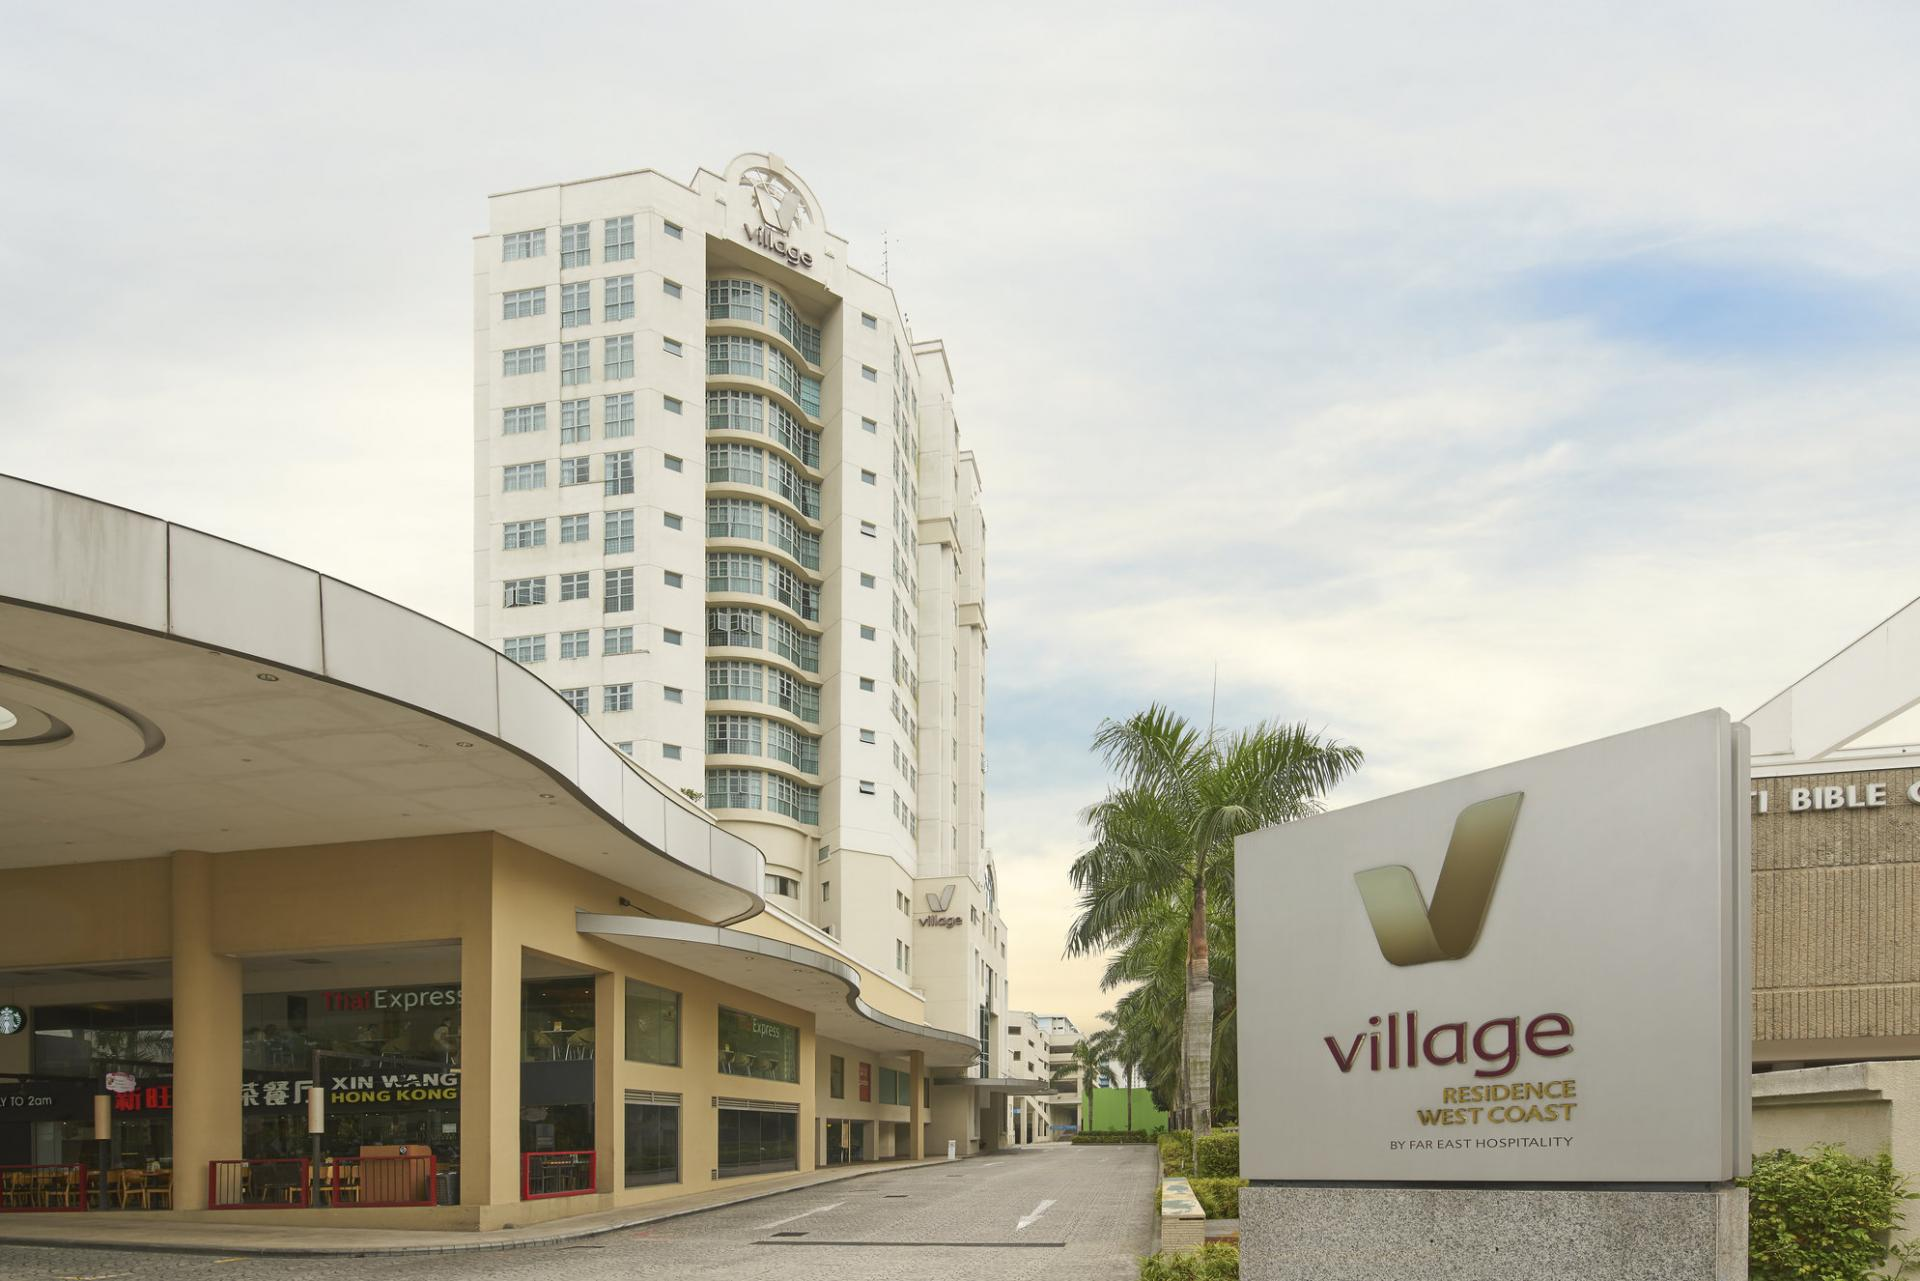 Exterior at Village Residence West Coast, Singapore